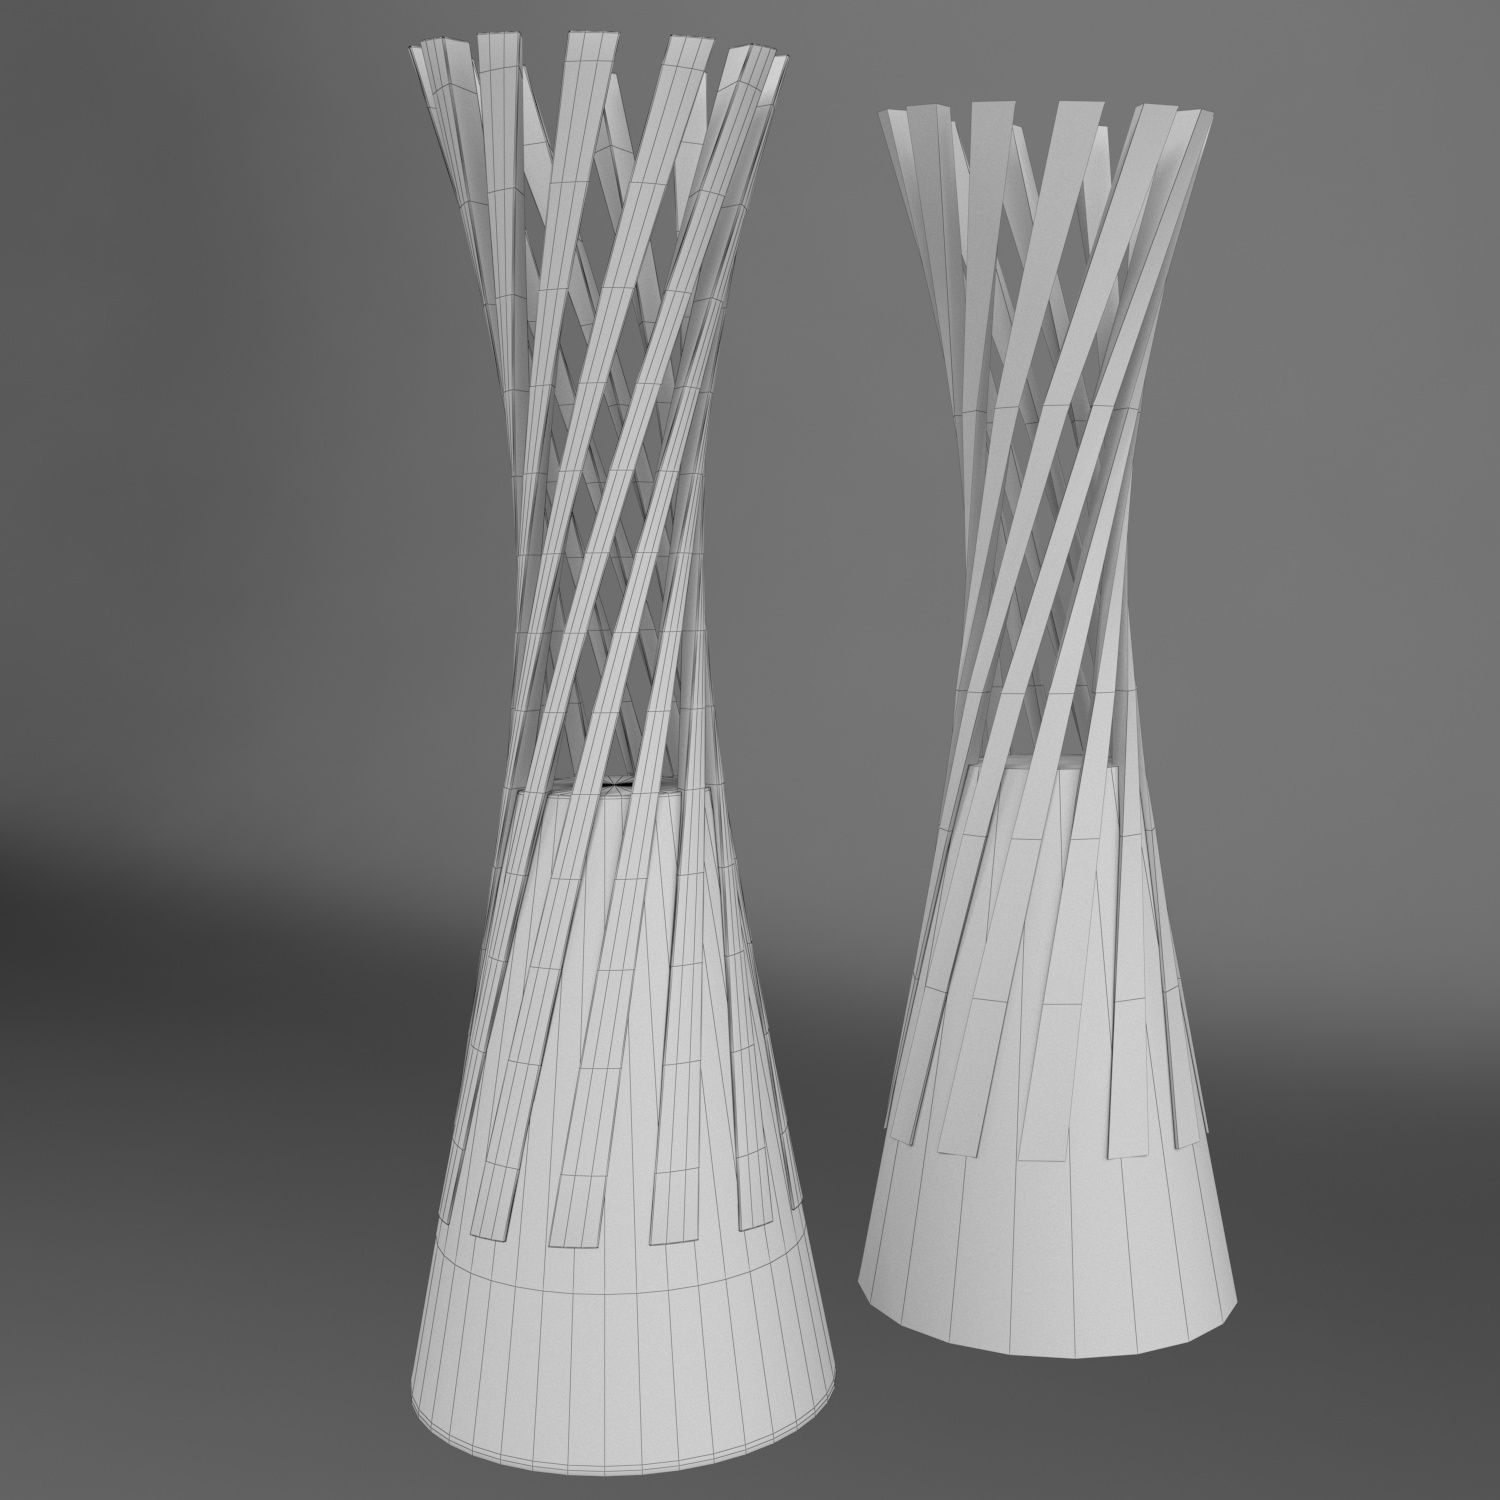 Volleyball World Championship Women Cup Trophy Low Poly World Championship Volleyball Trophy